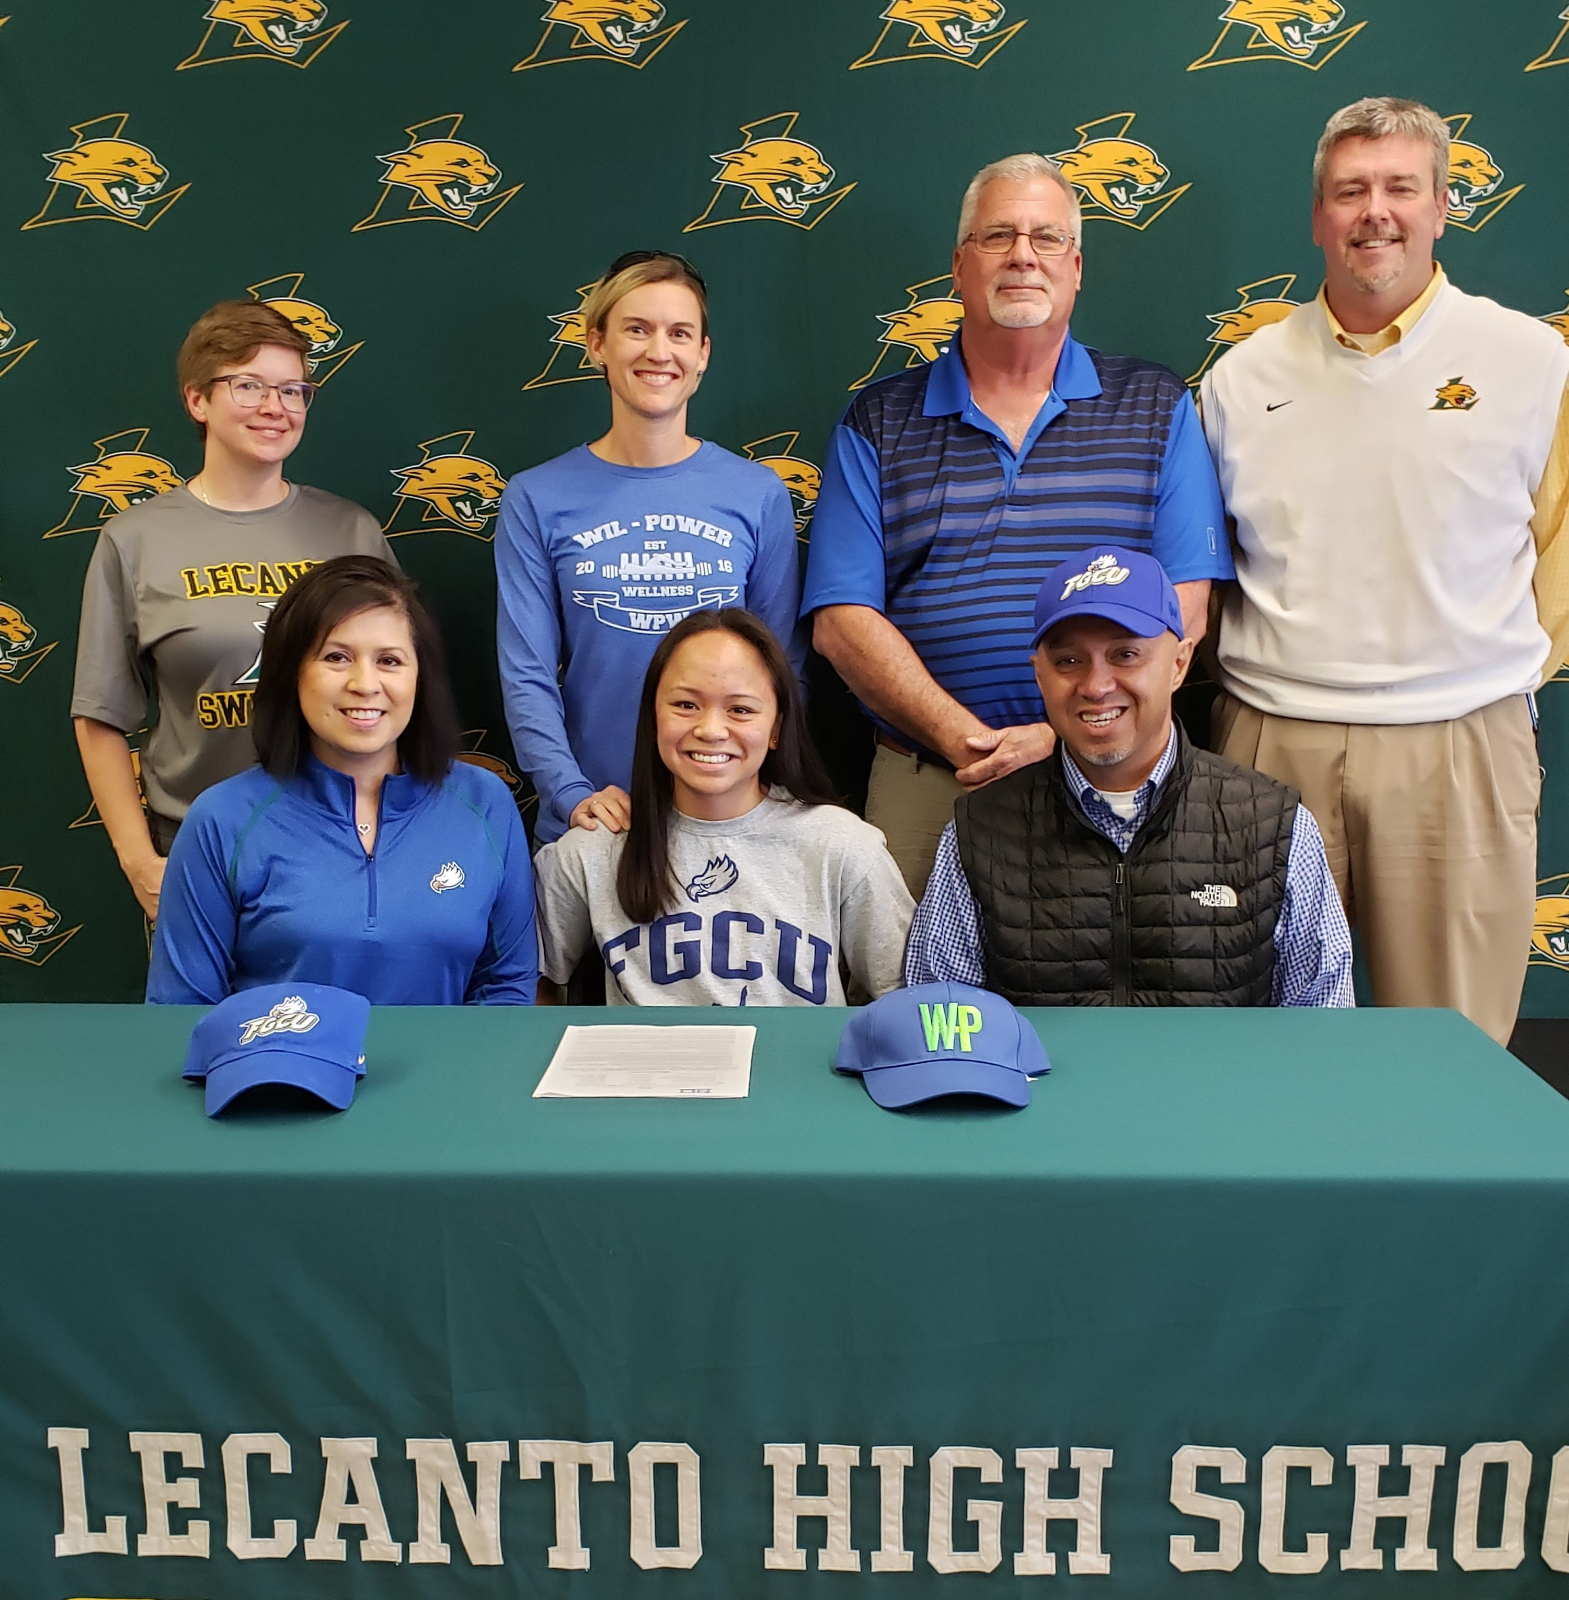 Macaisa Signs NLI with FGCU